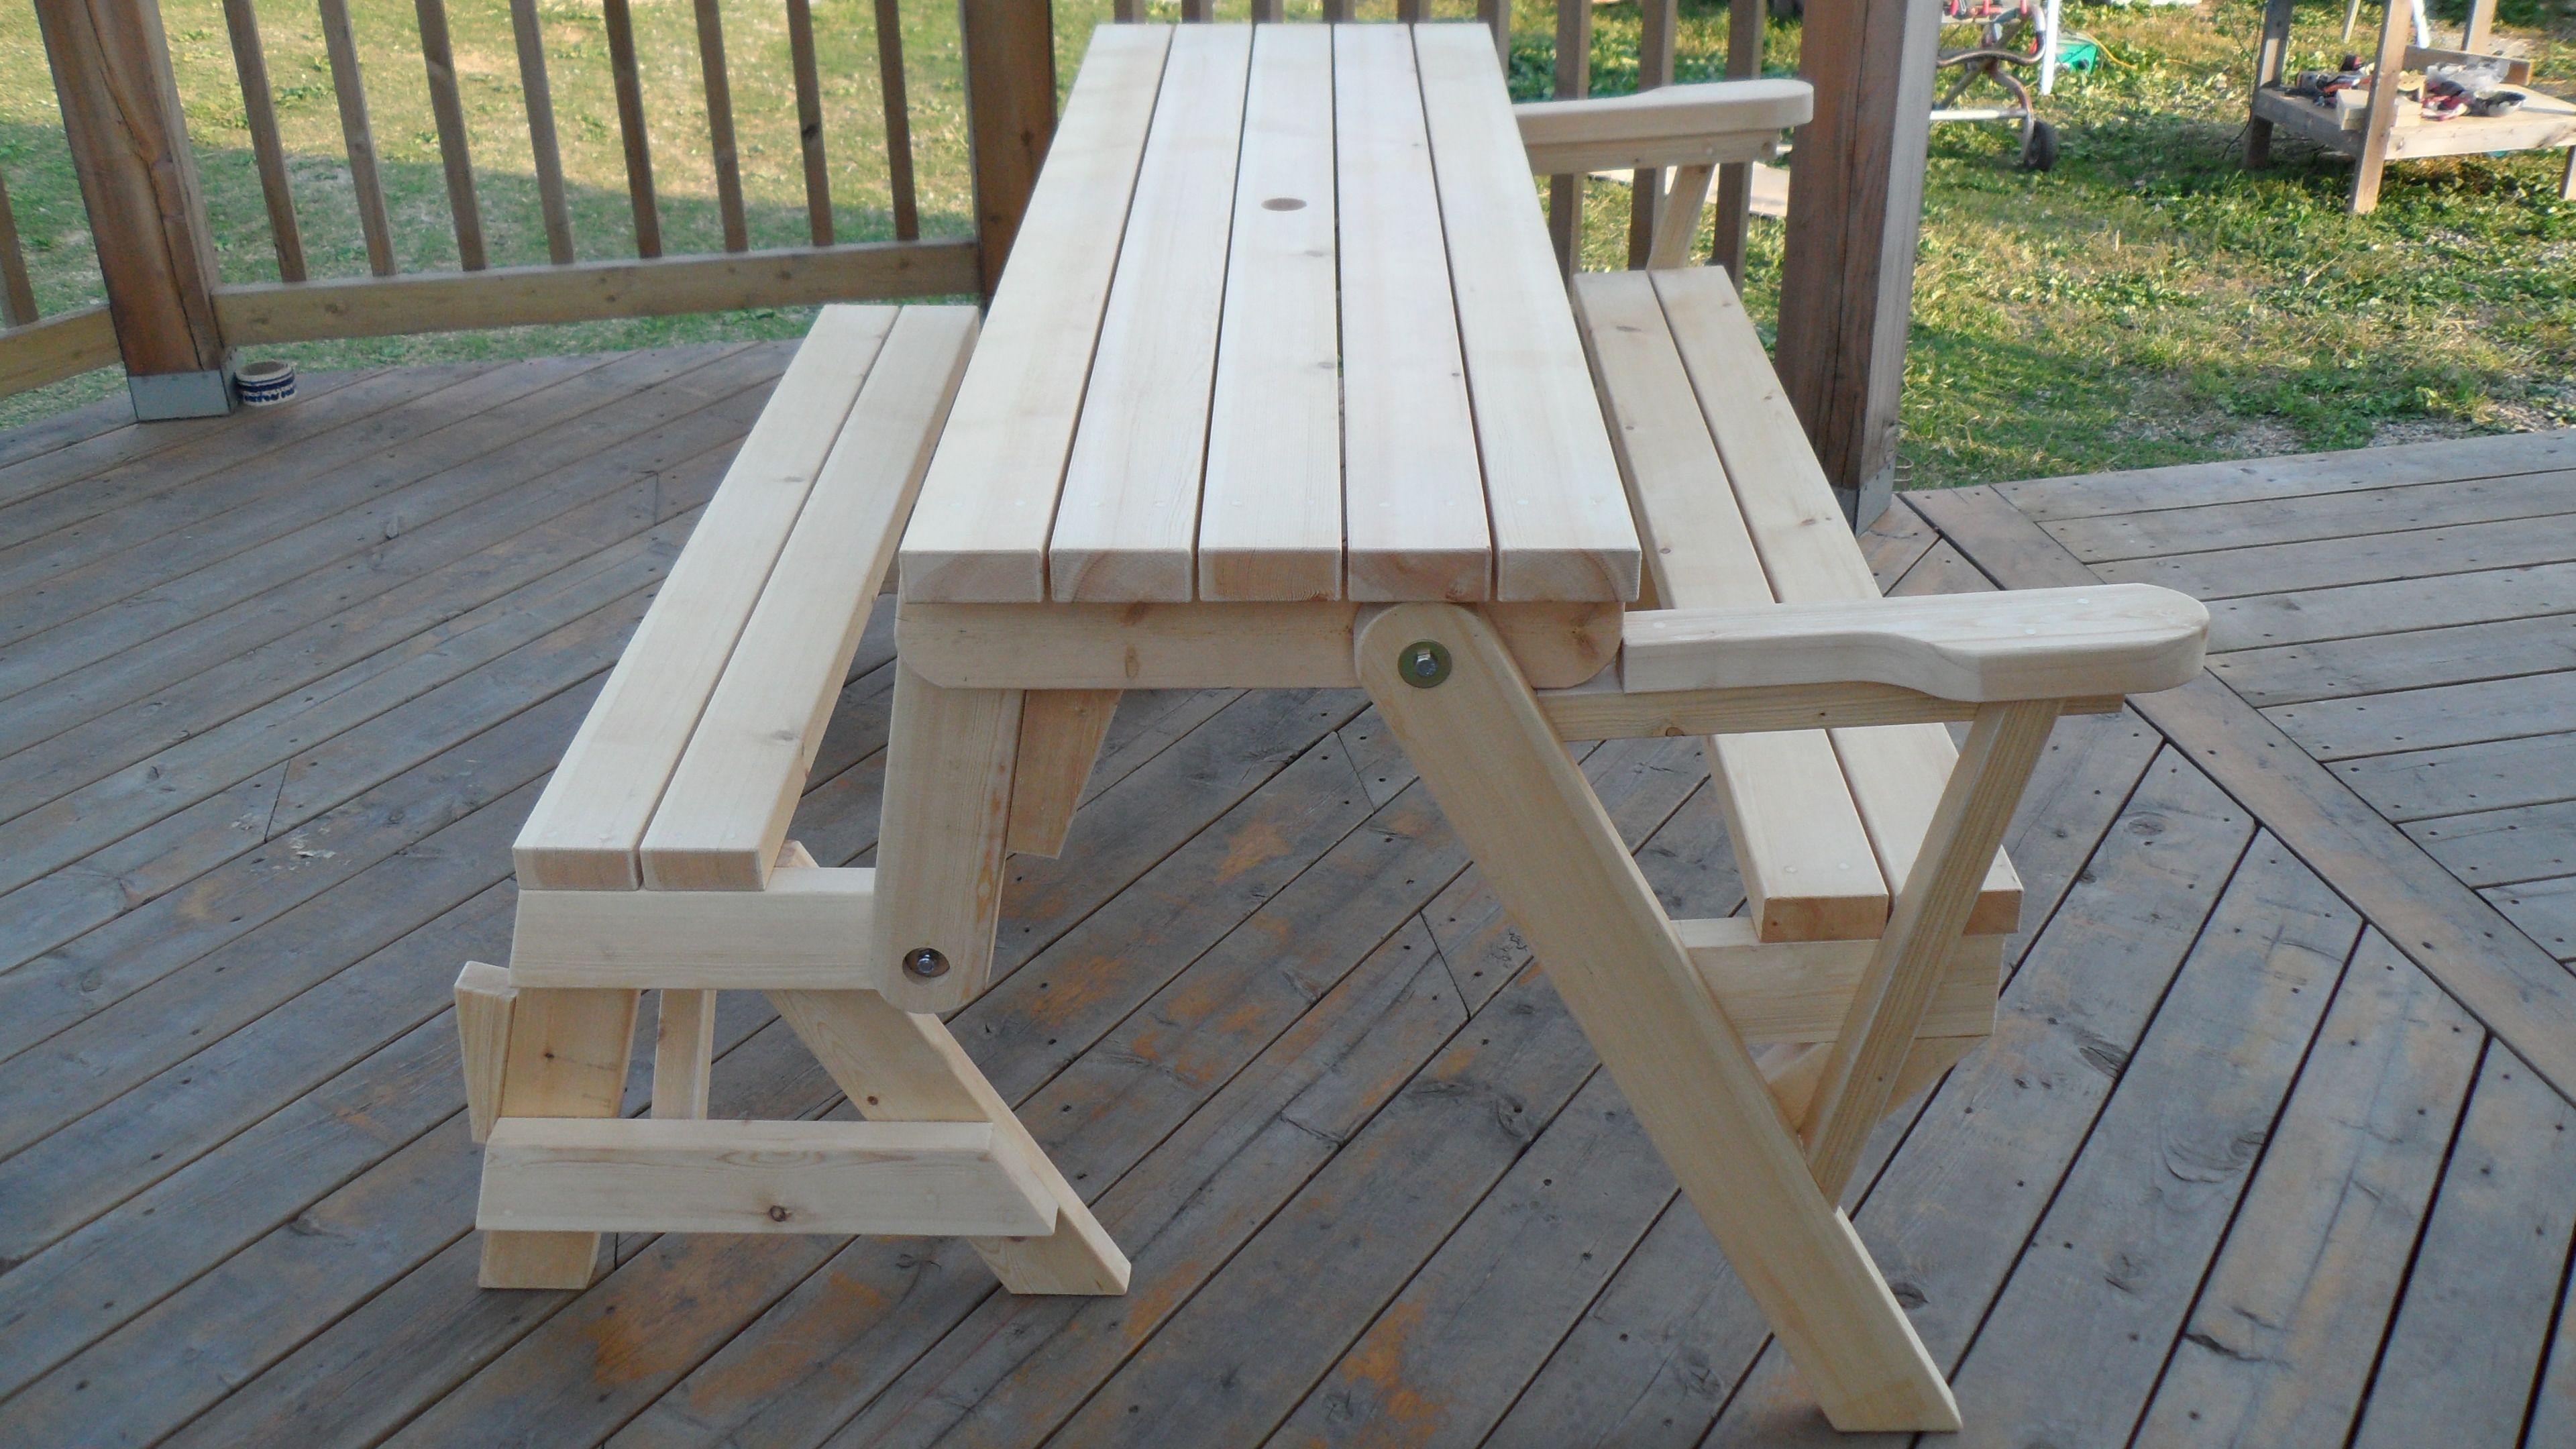 Folding Bench Picnic Table Combo Picnic Table Picnic Table Bench Folding Picnic Table Plans